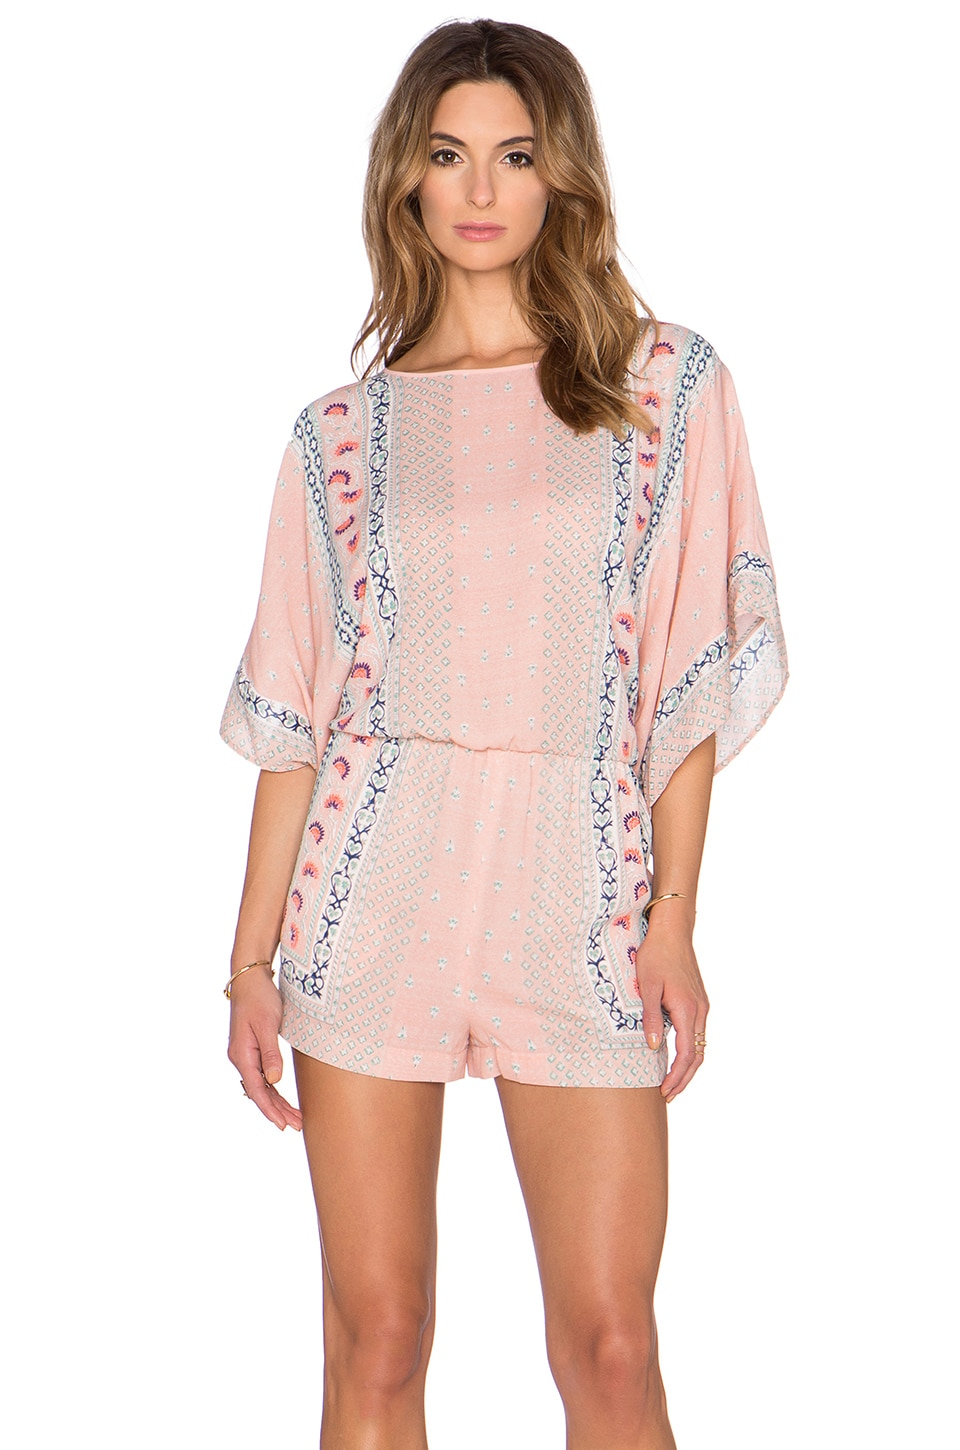 BCBGMAXAZRIA Caiti Kimono Sleeve Romper in Shadow Blush